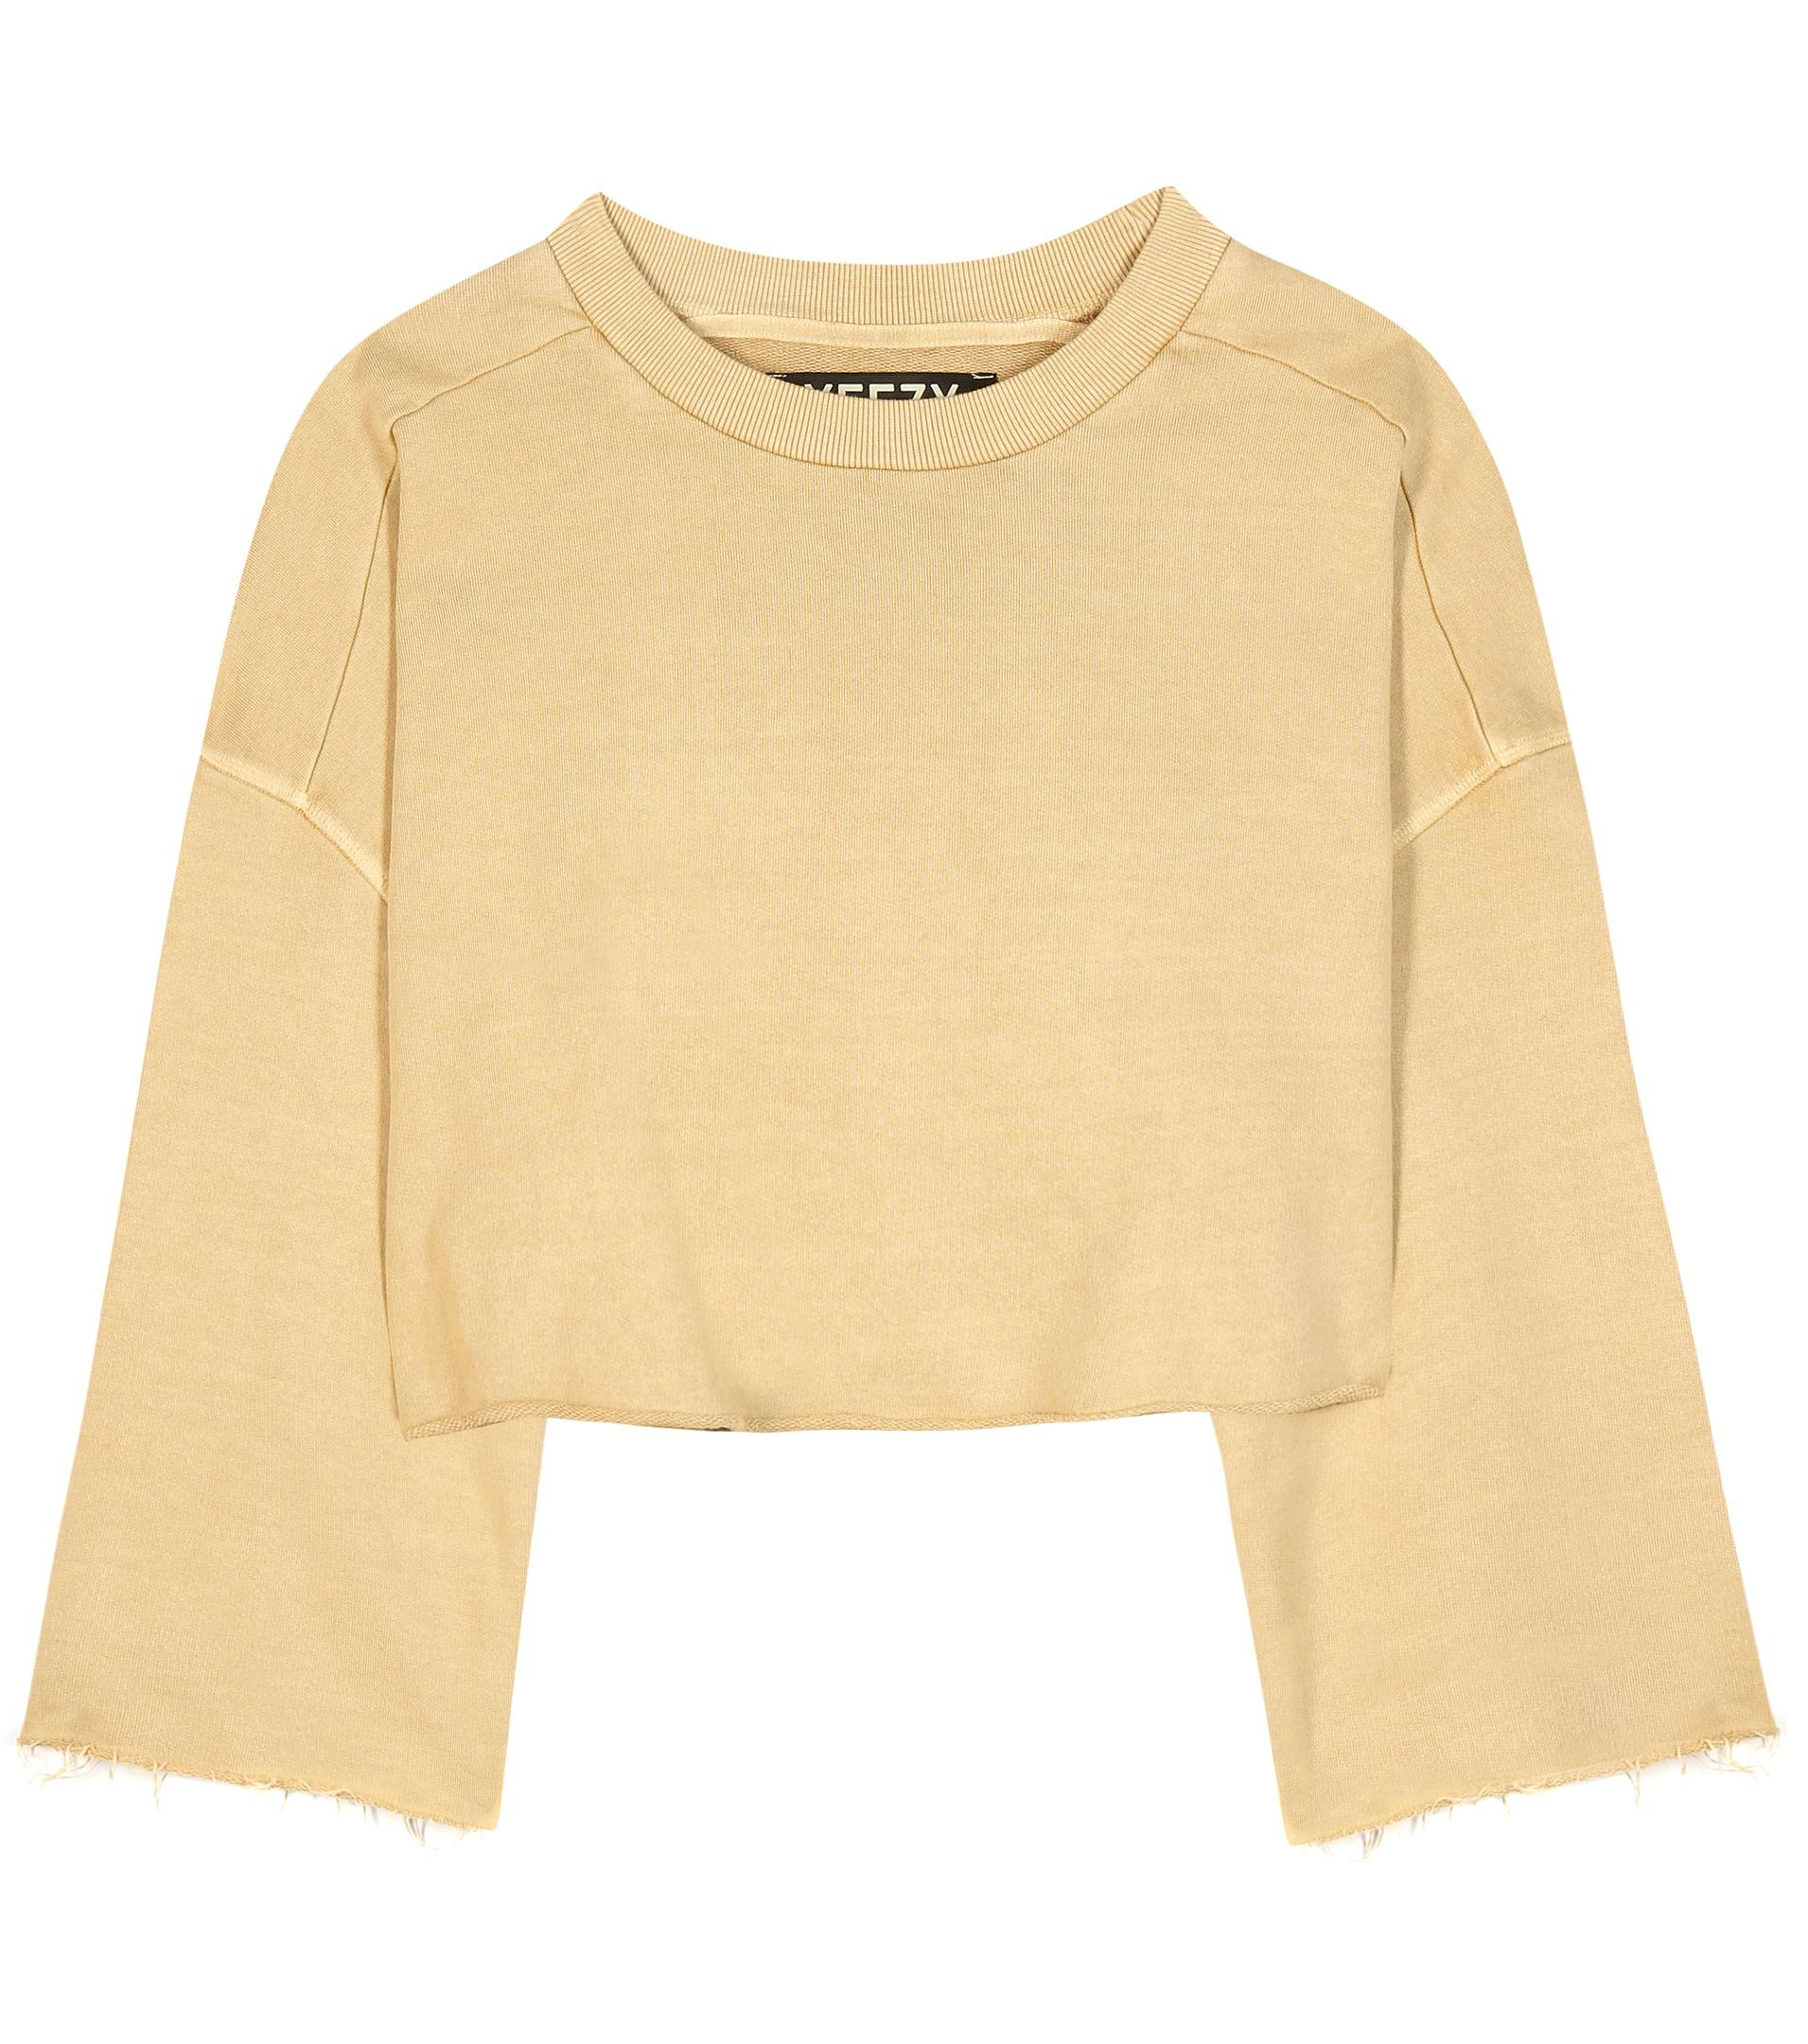 Yeezy Cropped Cotton Sweater (season 1) in Natural | Lyst